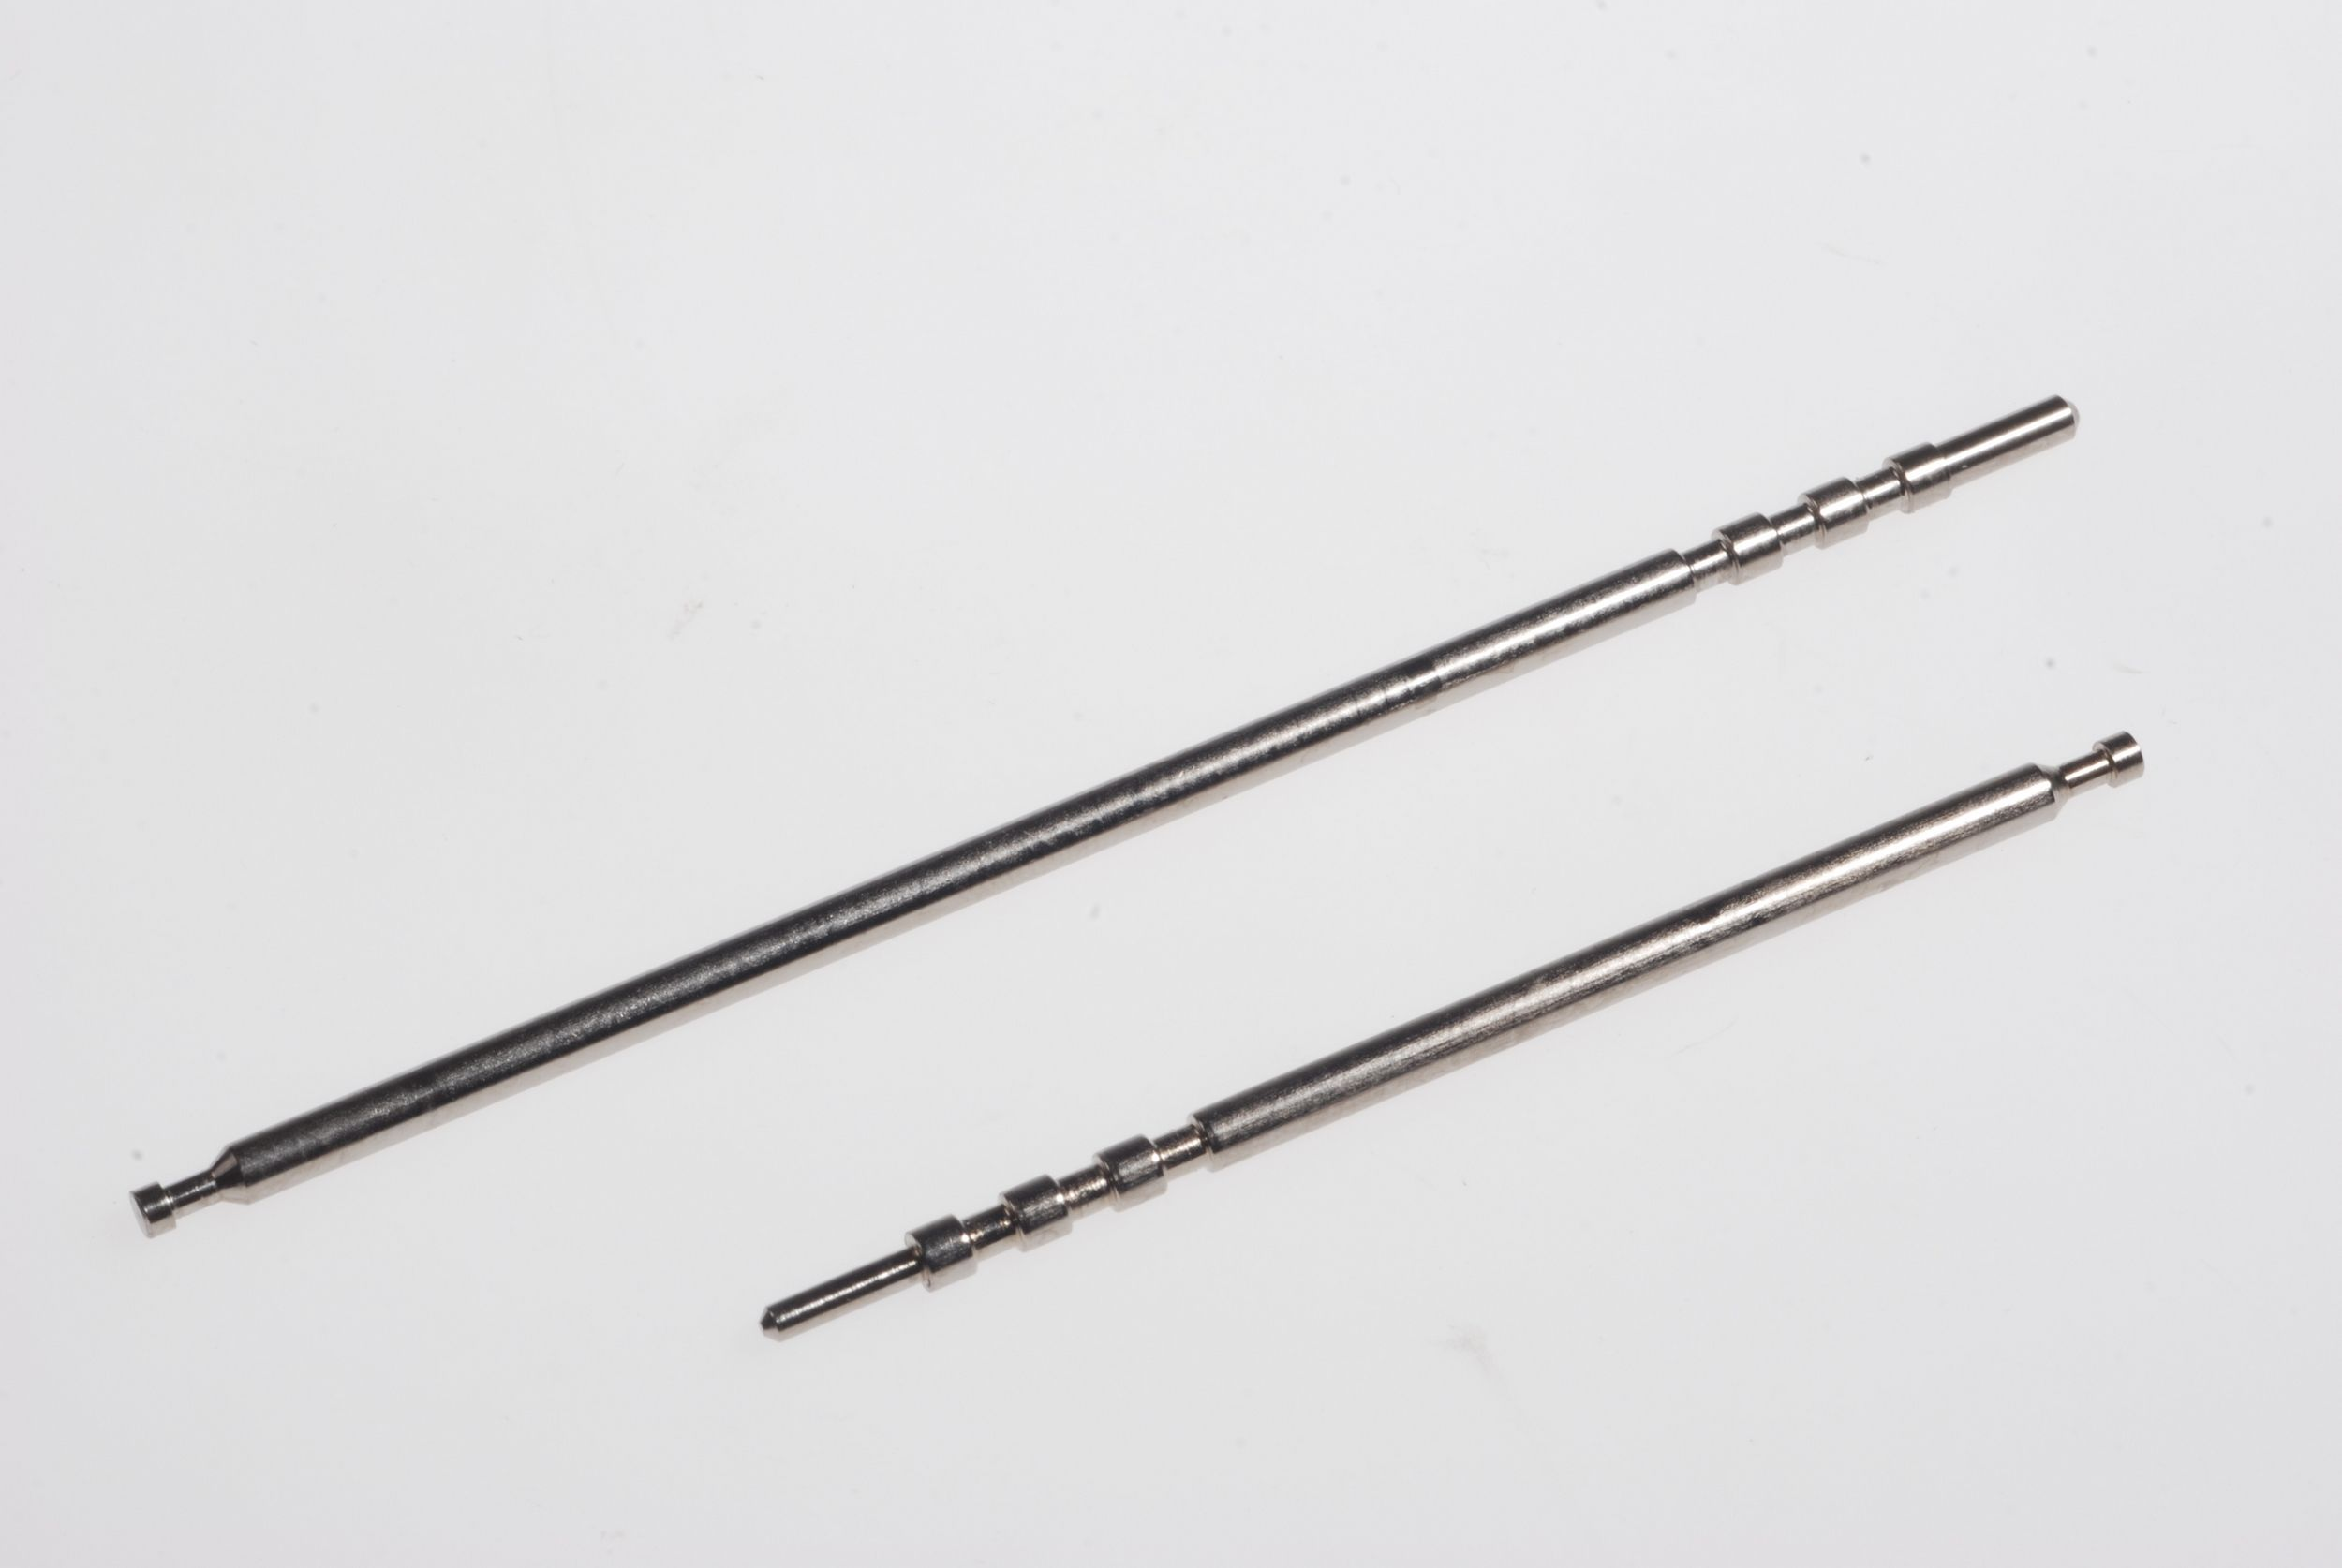 Nickel-plated steel pins